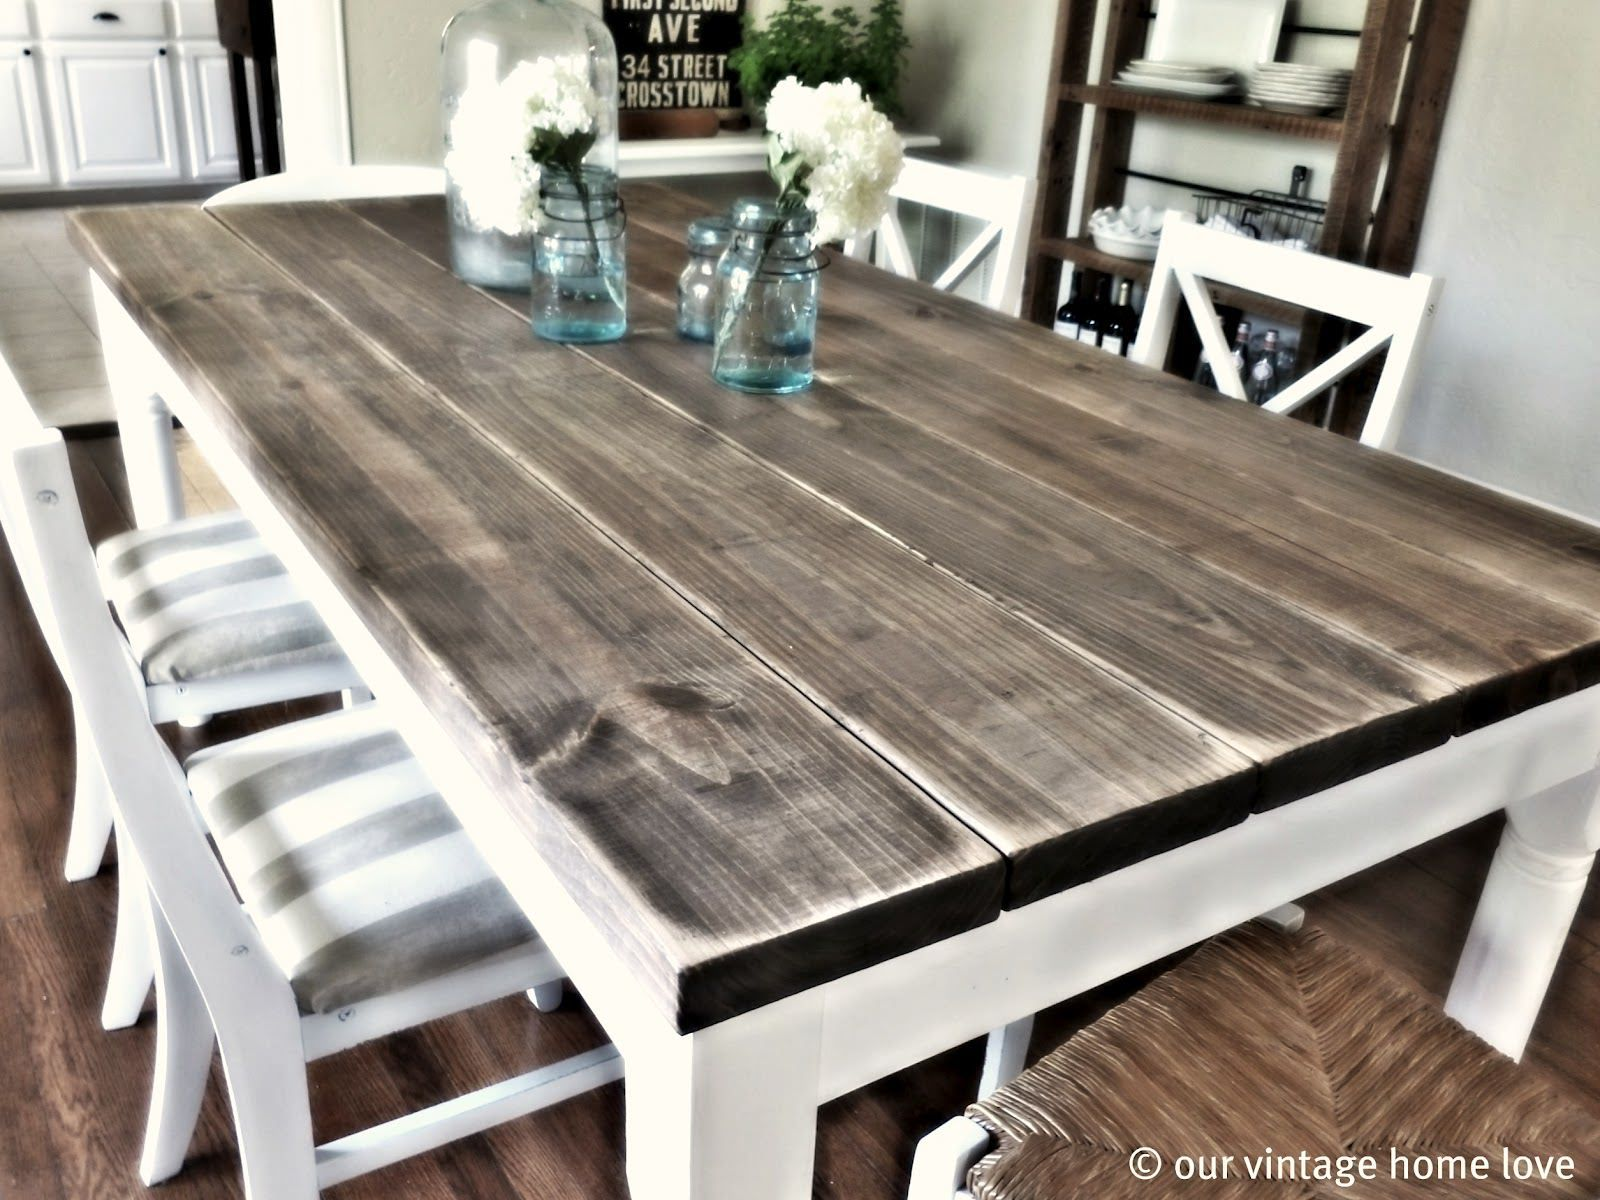 Free Custom Farmhouse Dining Table | Ideas for the House | Pinterest ...